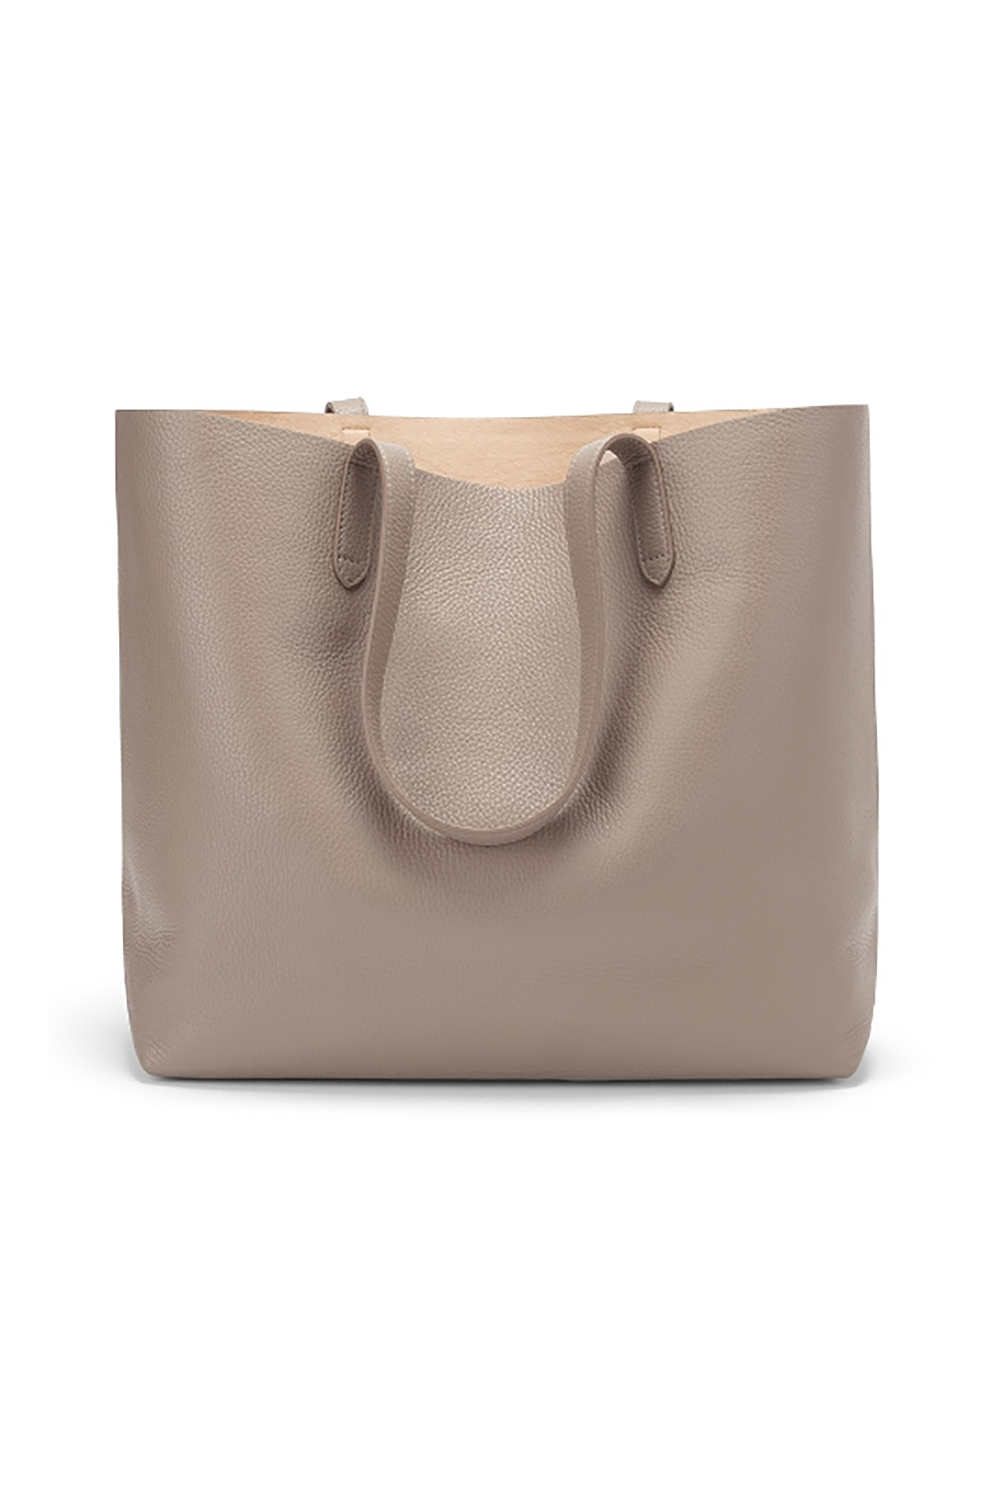 Say My Name, Say My Name Cuyana $195.00 SHOP IT Never worry about tipping over with any spillable lunch items again with this roomy pebbled leather Cuyana tote. Minimal lovers will appreciate the clean aesthetic and the thoughtful option to customize it with monogrammed initials.